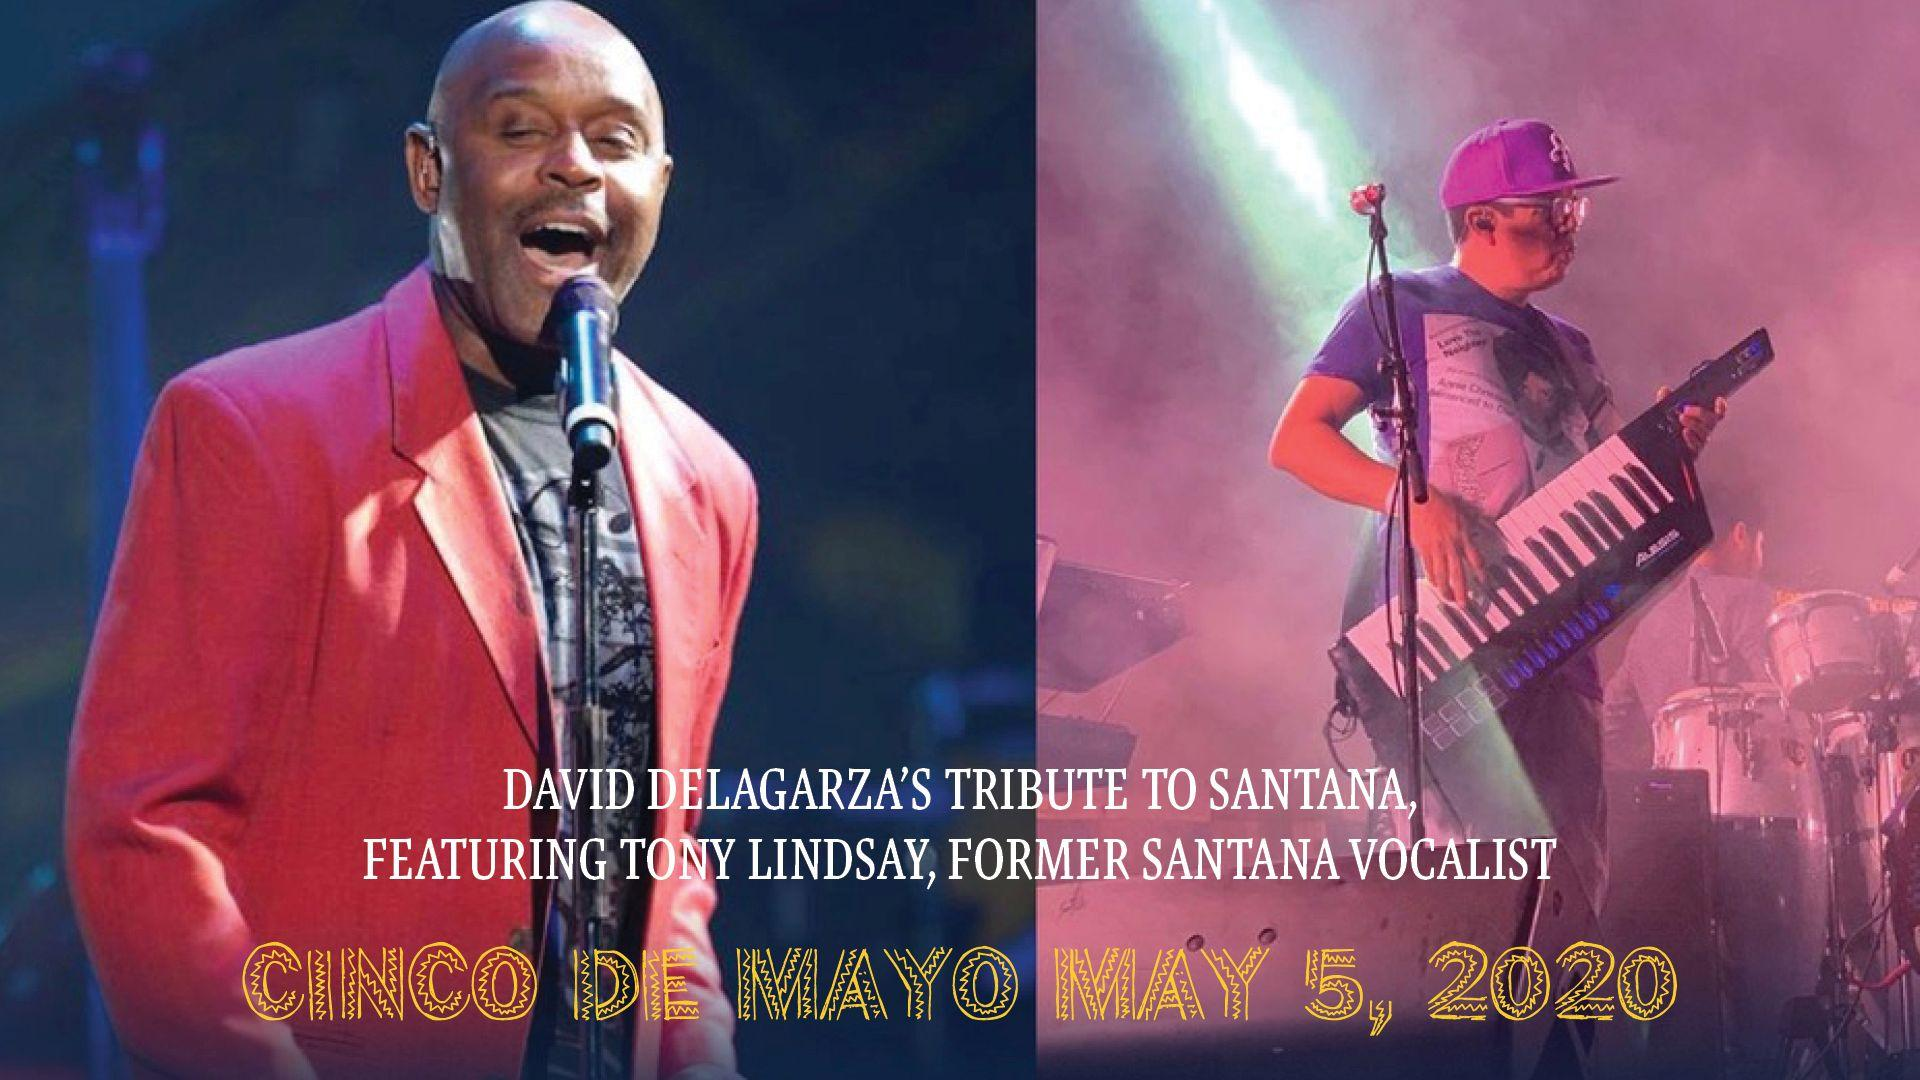 DAVID DE LA GARZA'S TRIBUTE TO SANTANA FEATURING TONY LINDSAY